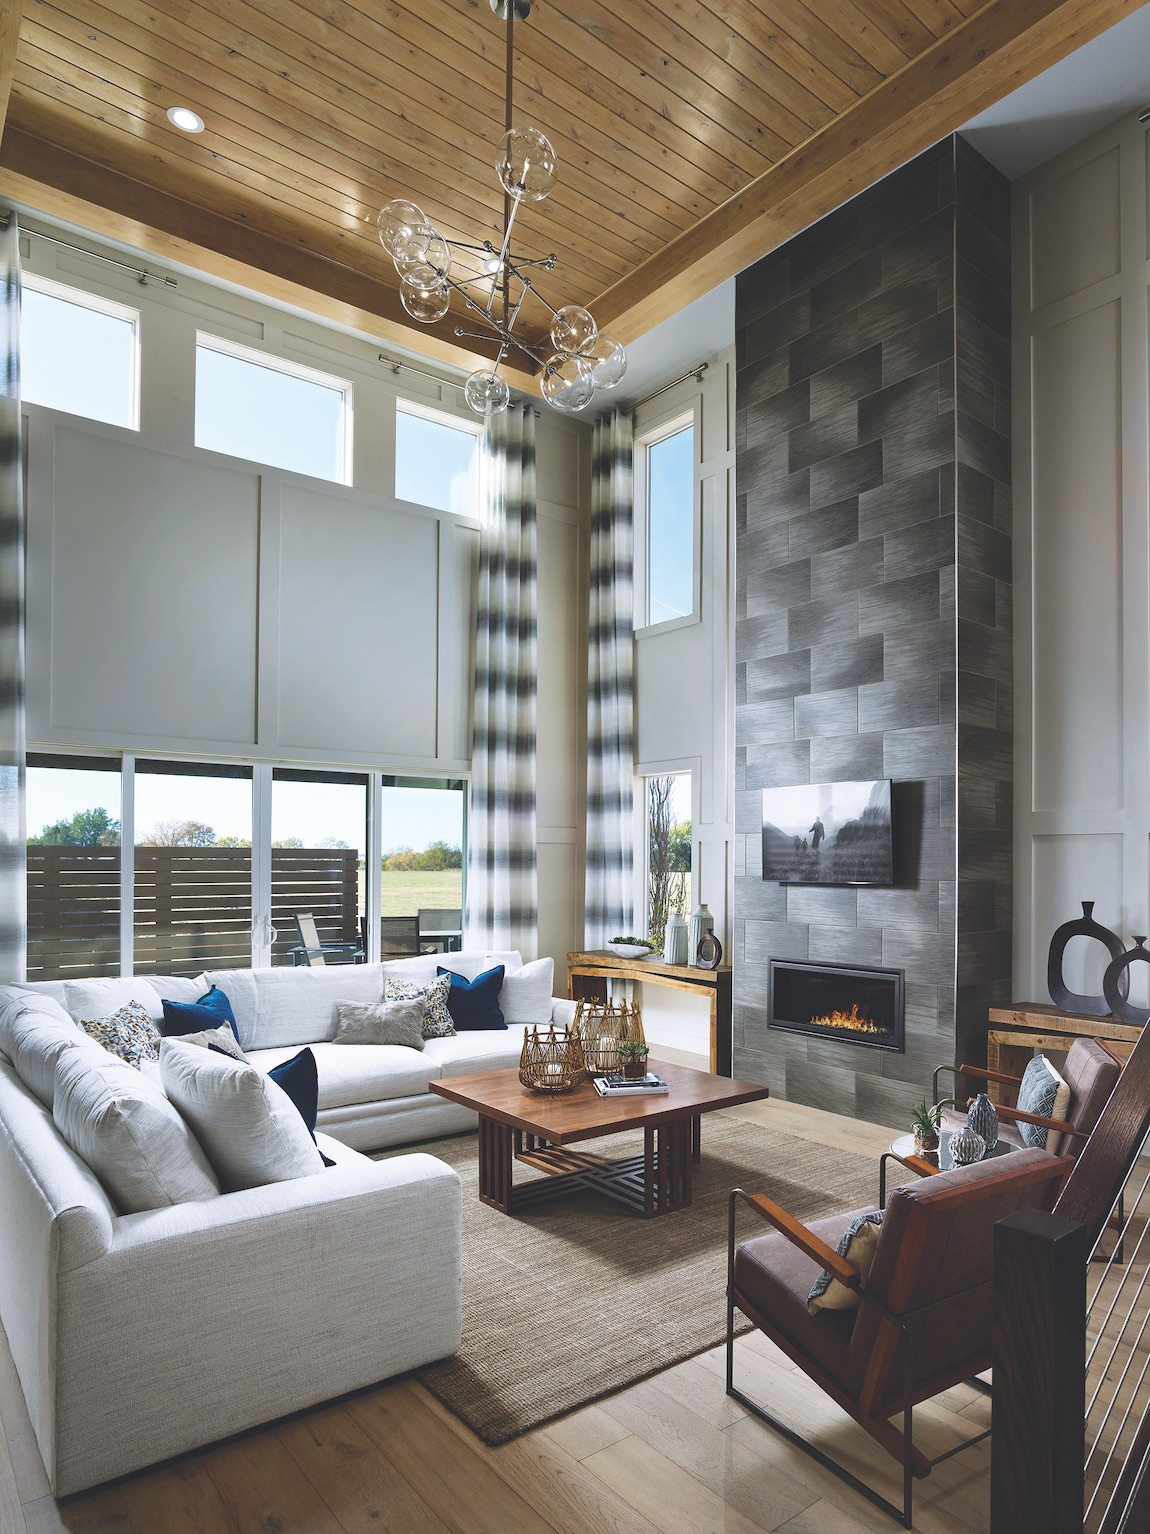 Great room with floor to ceiling windows, white couch, and electric fireplace